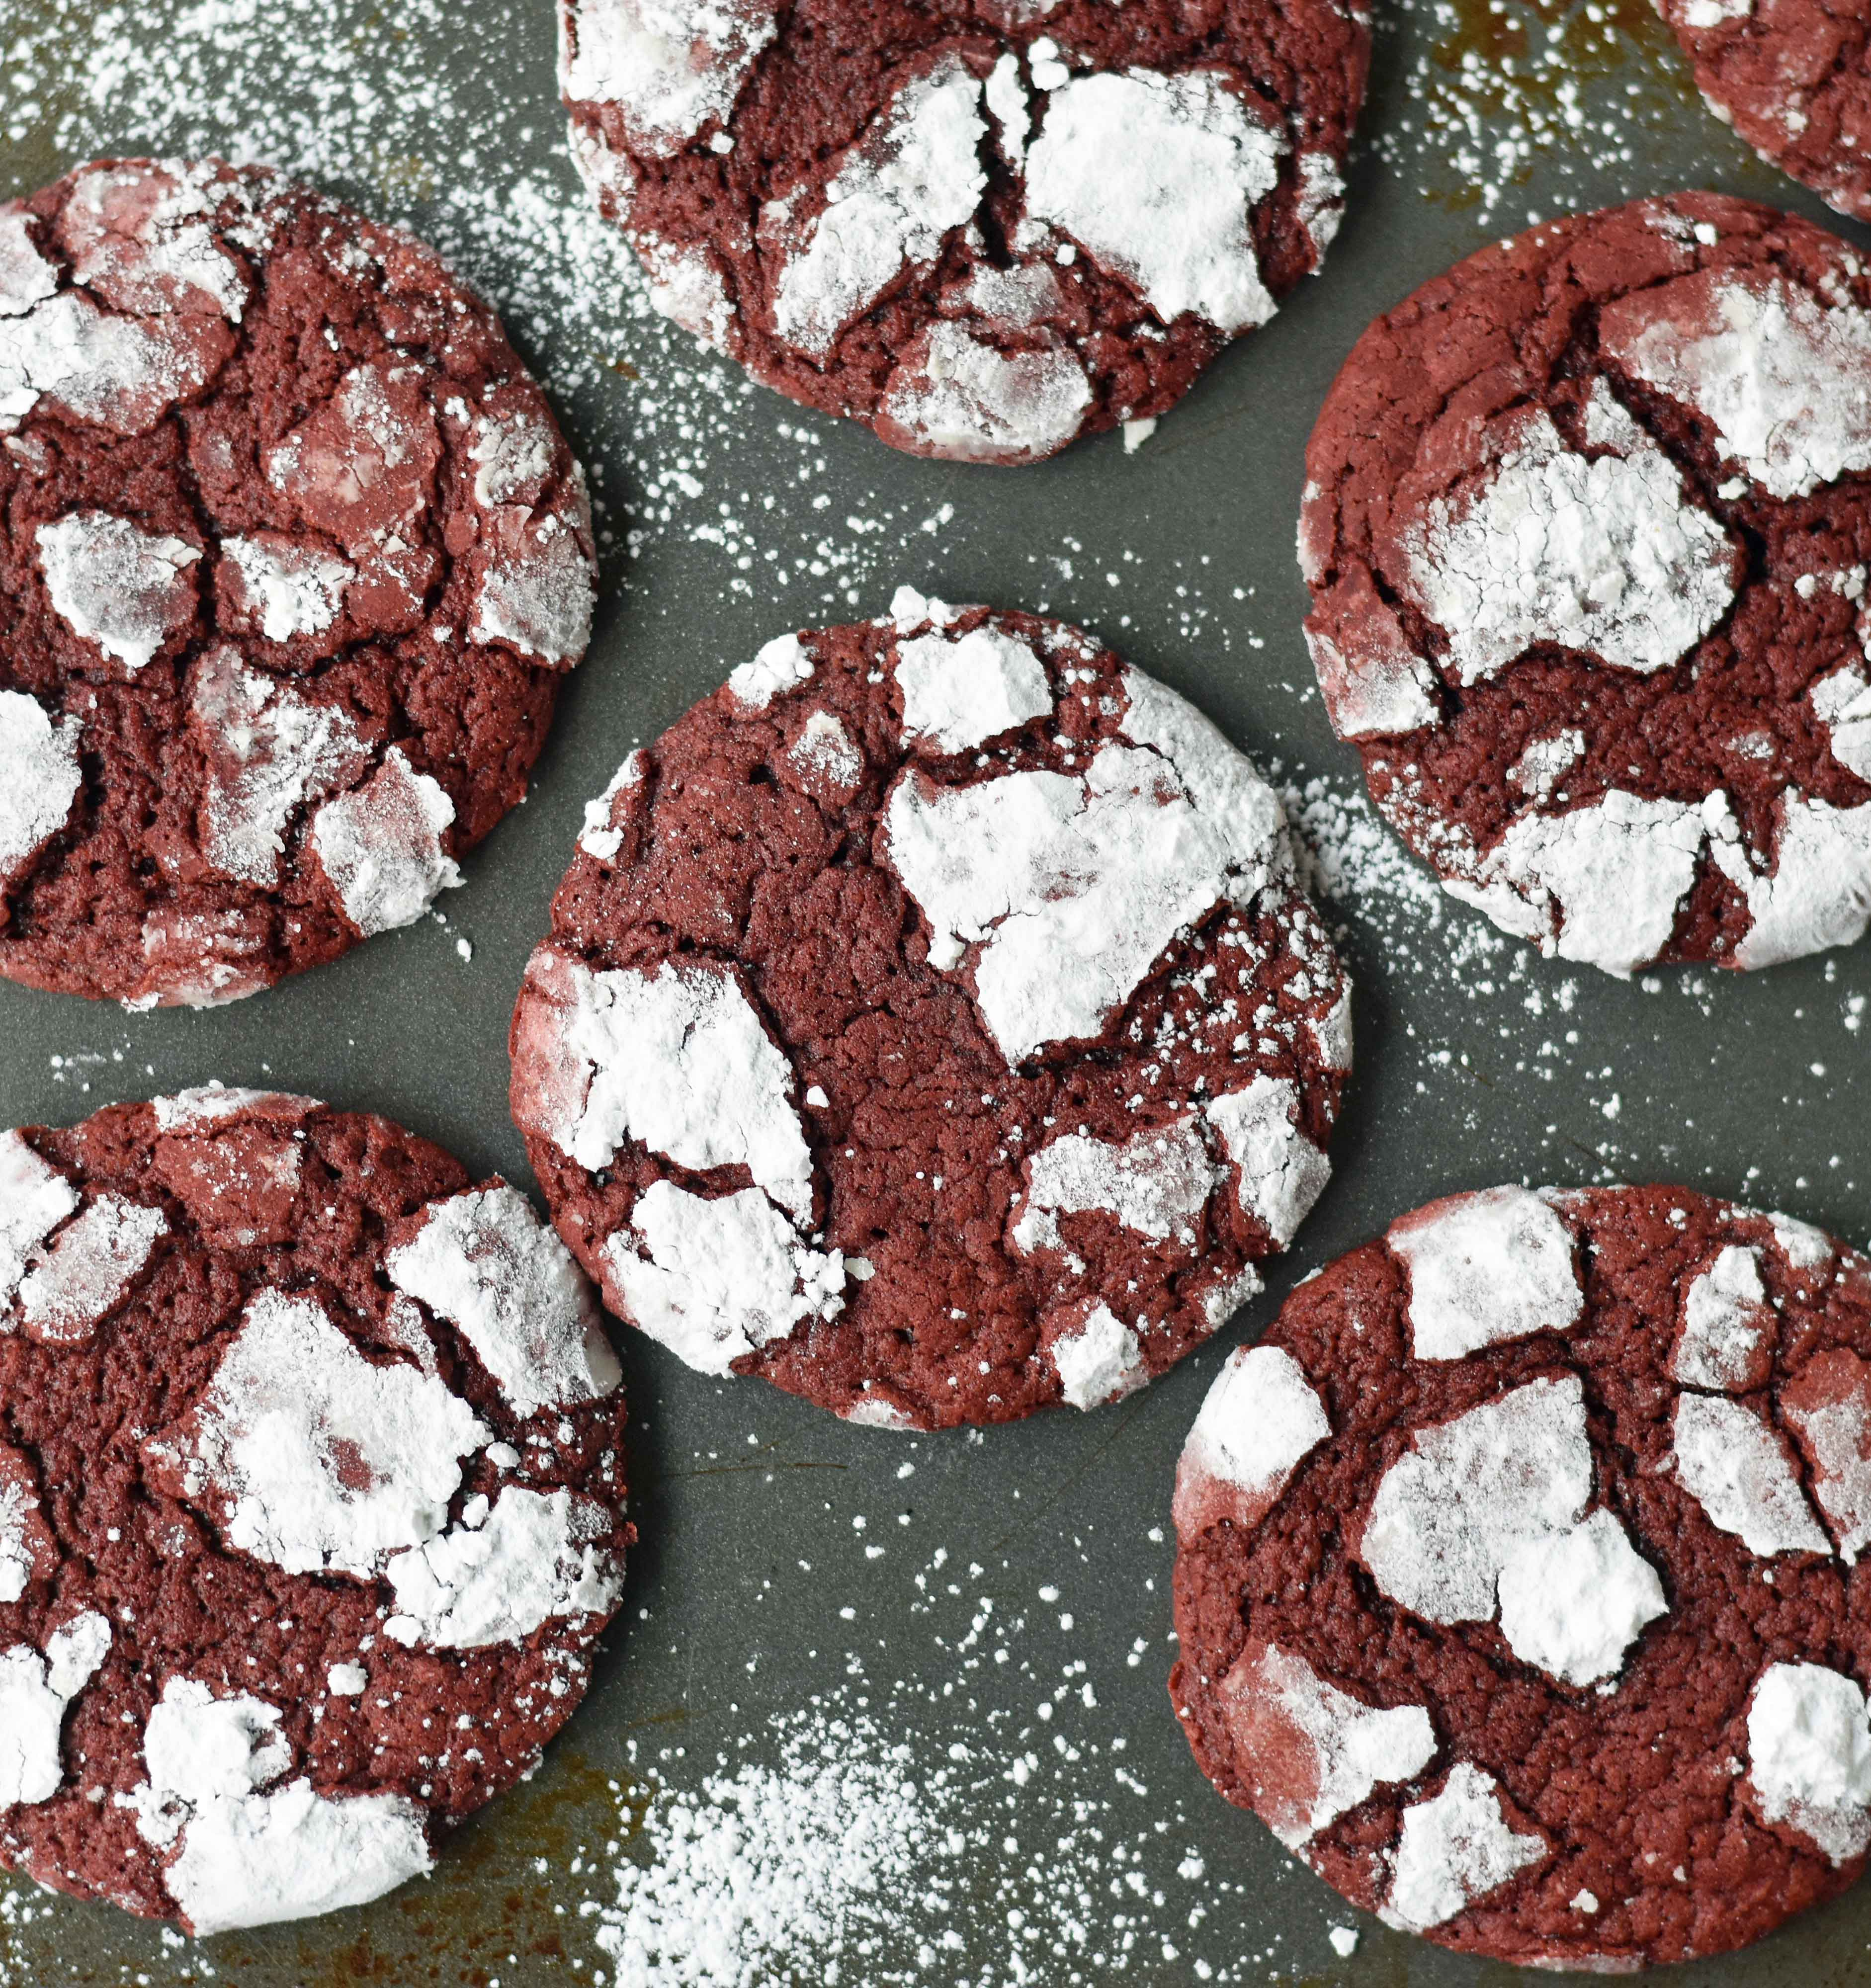 Red Velvet Crinkle Cookies are a mild chocolate soft chewy cookie covered in powdered sugar. A beautifully festive Christmas cookie. www.modernhoney.com